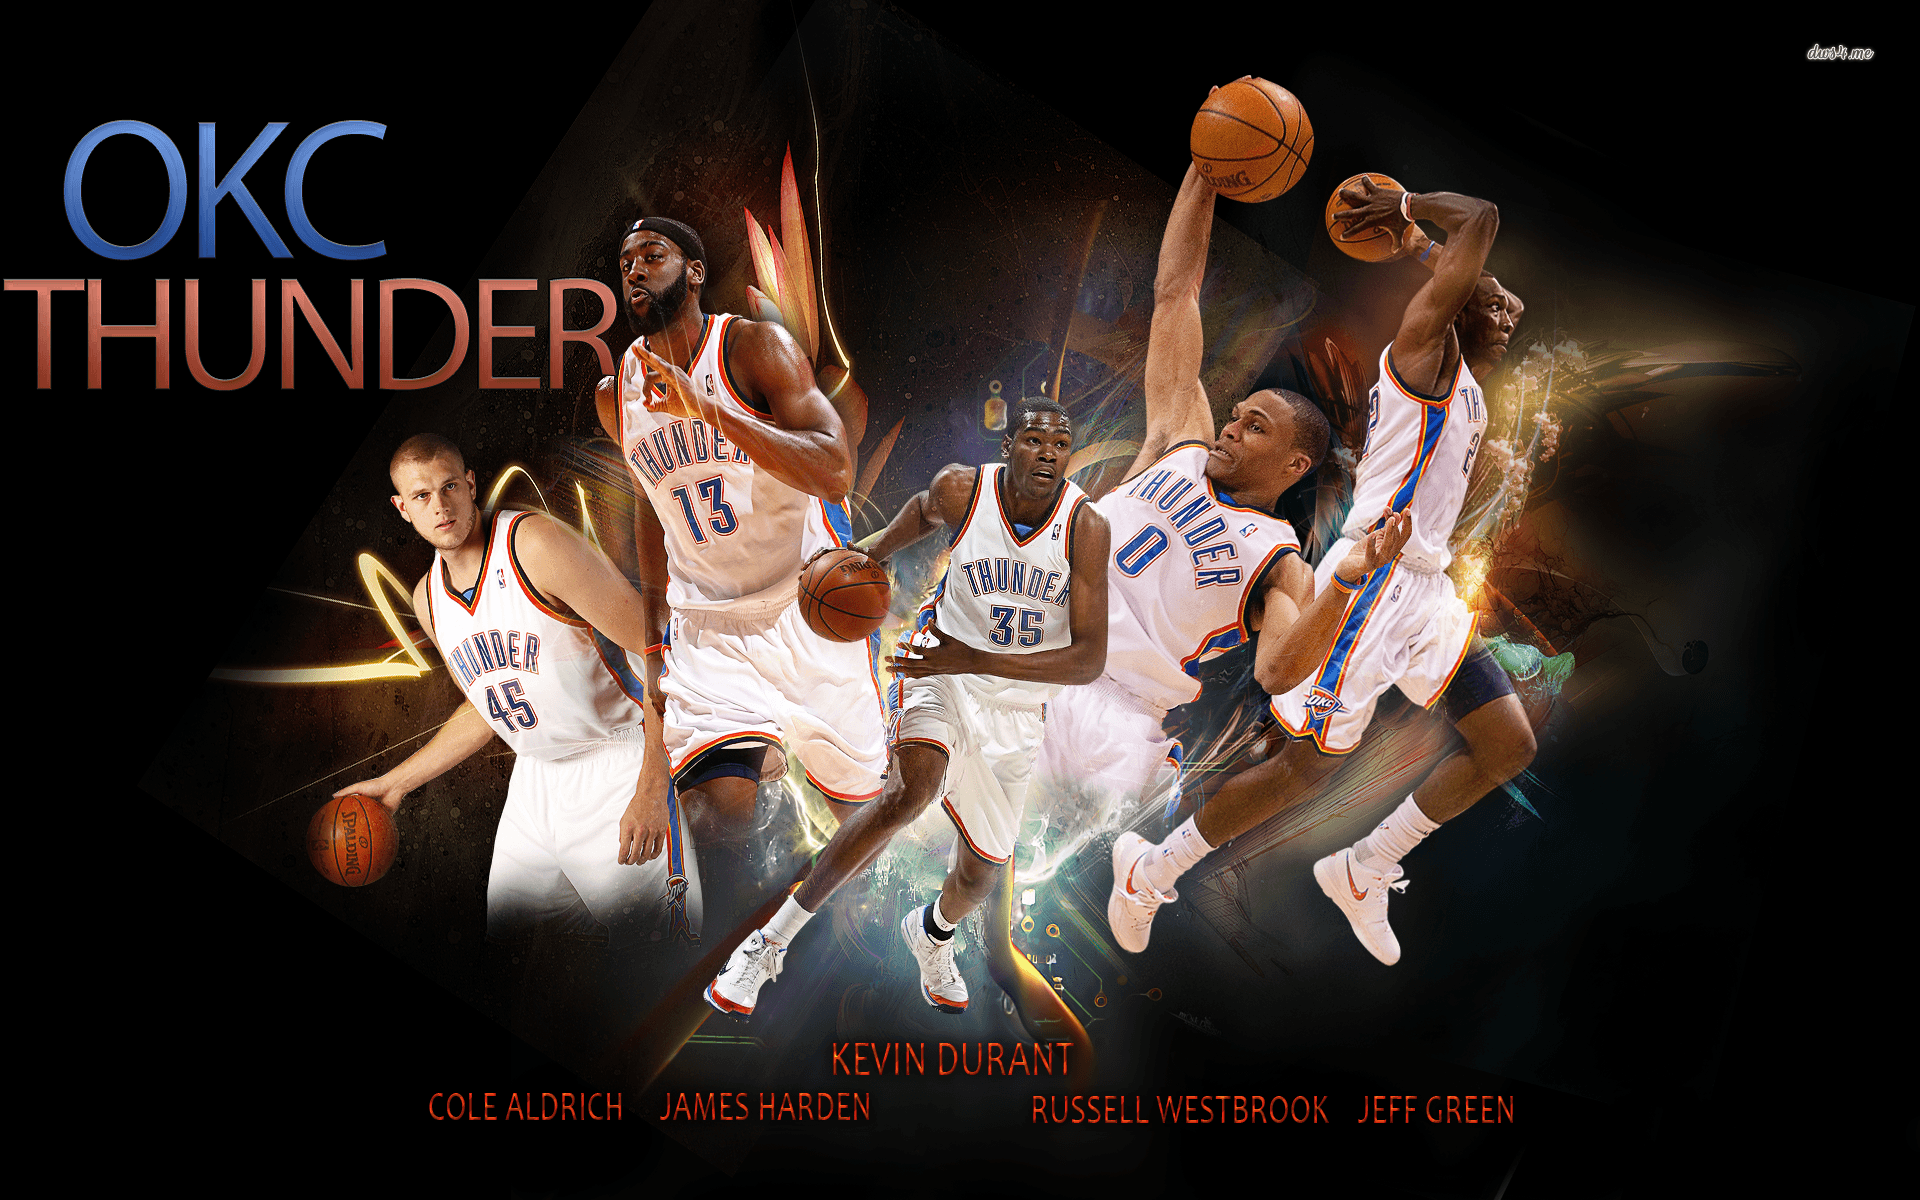 Kevin Durant And Russell Westbrook Wallpapers 2016 1920x1200